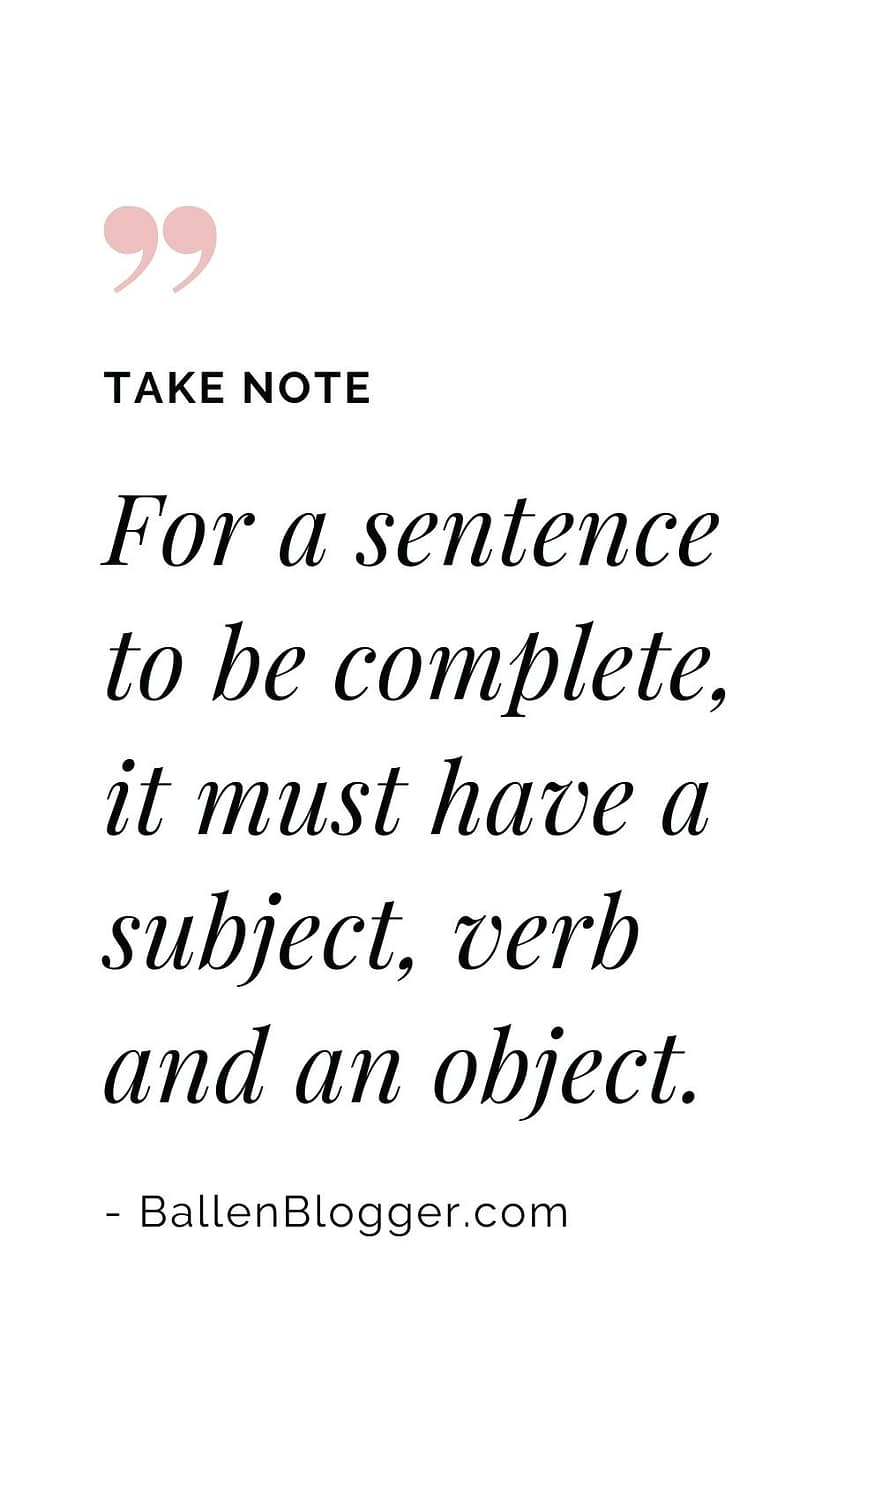 For a sentence to be complete, it must have a subject, verb and an object.